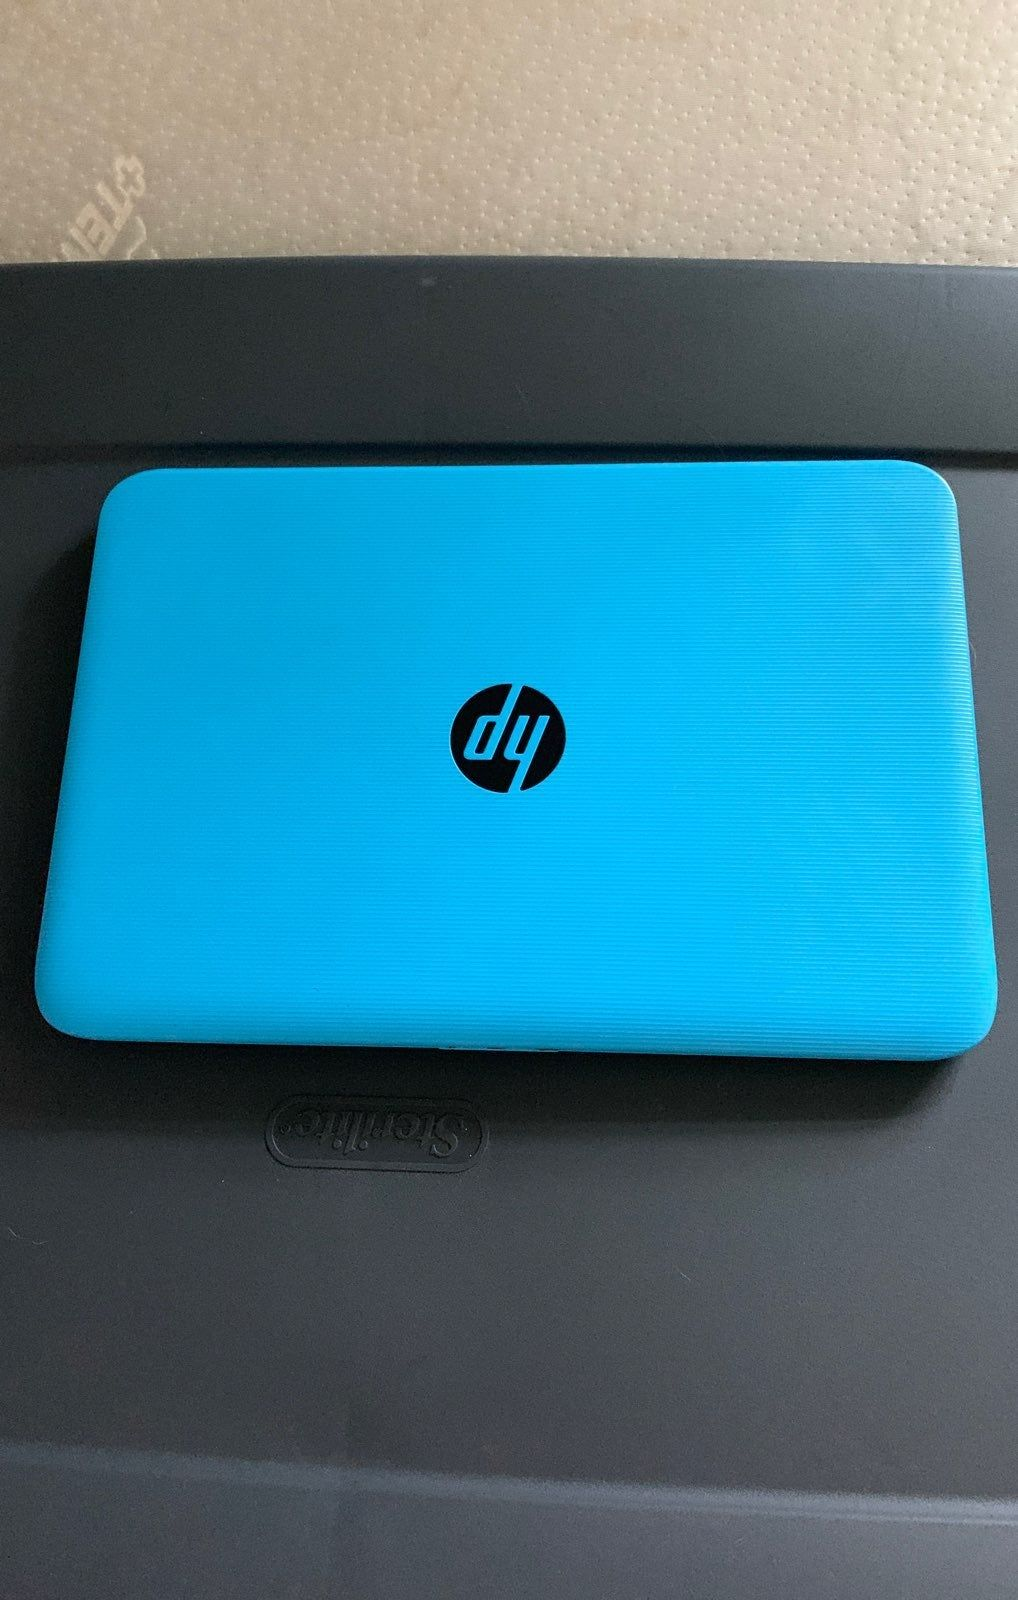 Blue HP laptop 1 year old, barley used, No Charger, comes